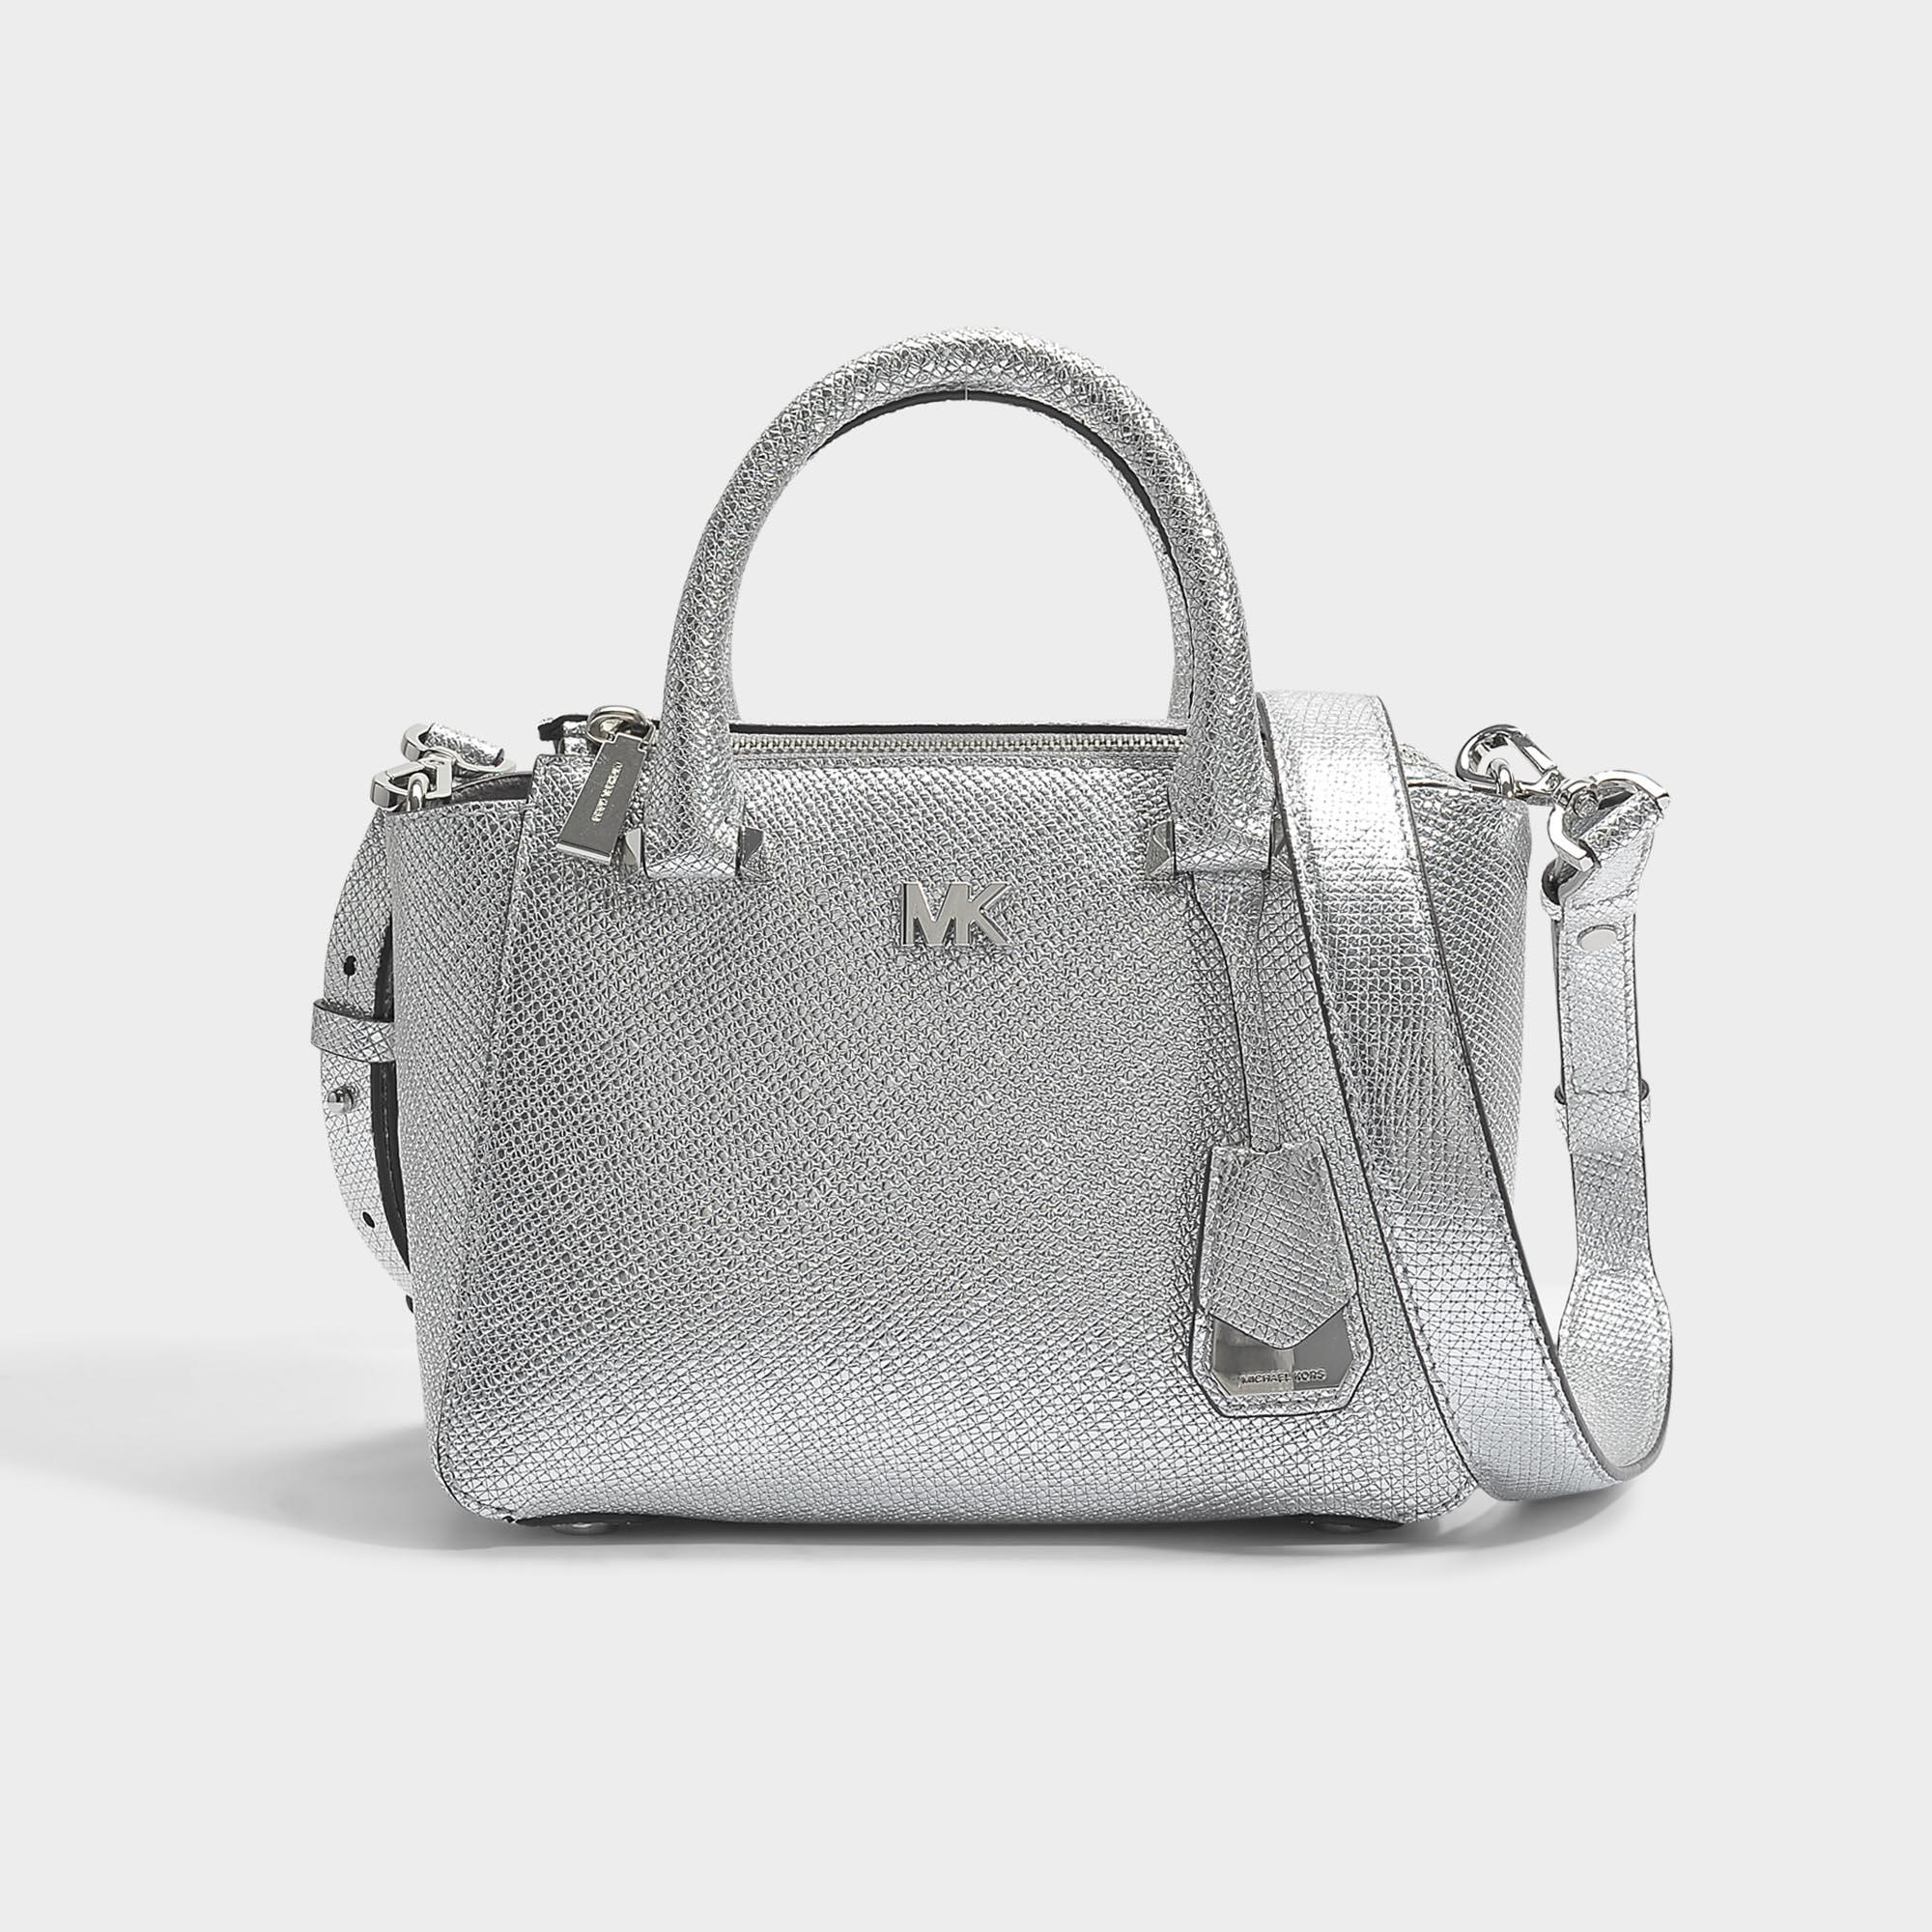 7d9a6e9bd1d3 Lyst - MICHAEL Michael Kors Nolita Mini Messenger Bag In Silver ...